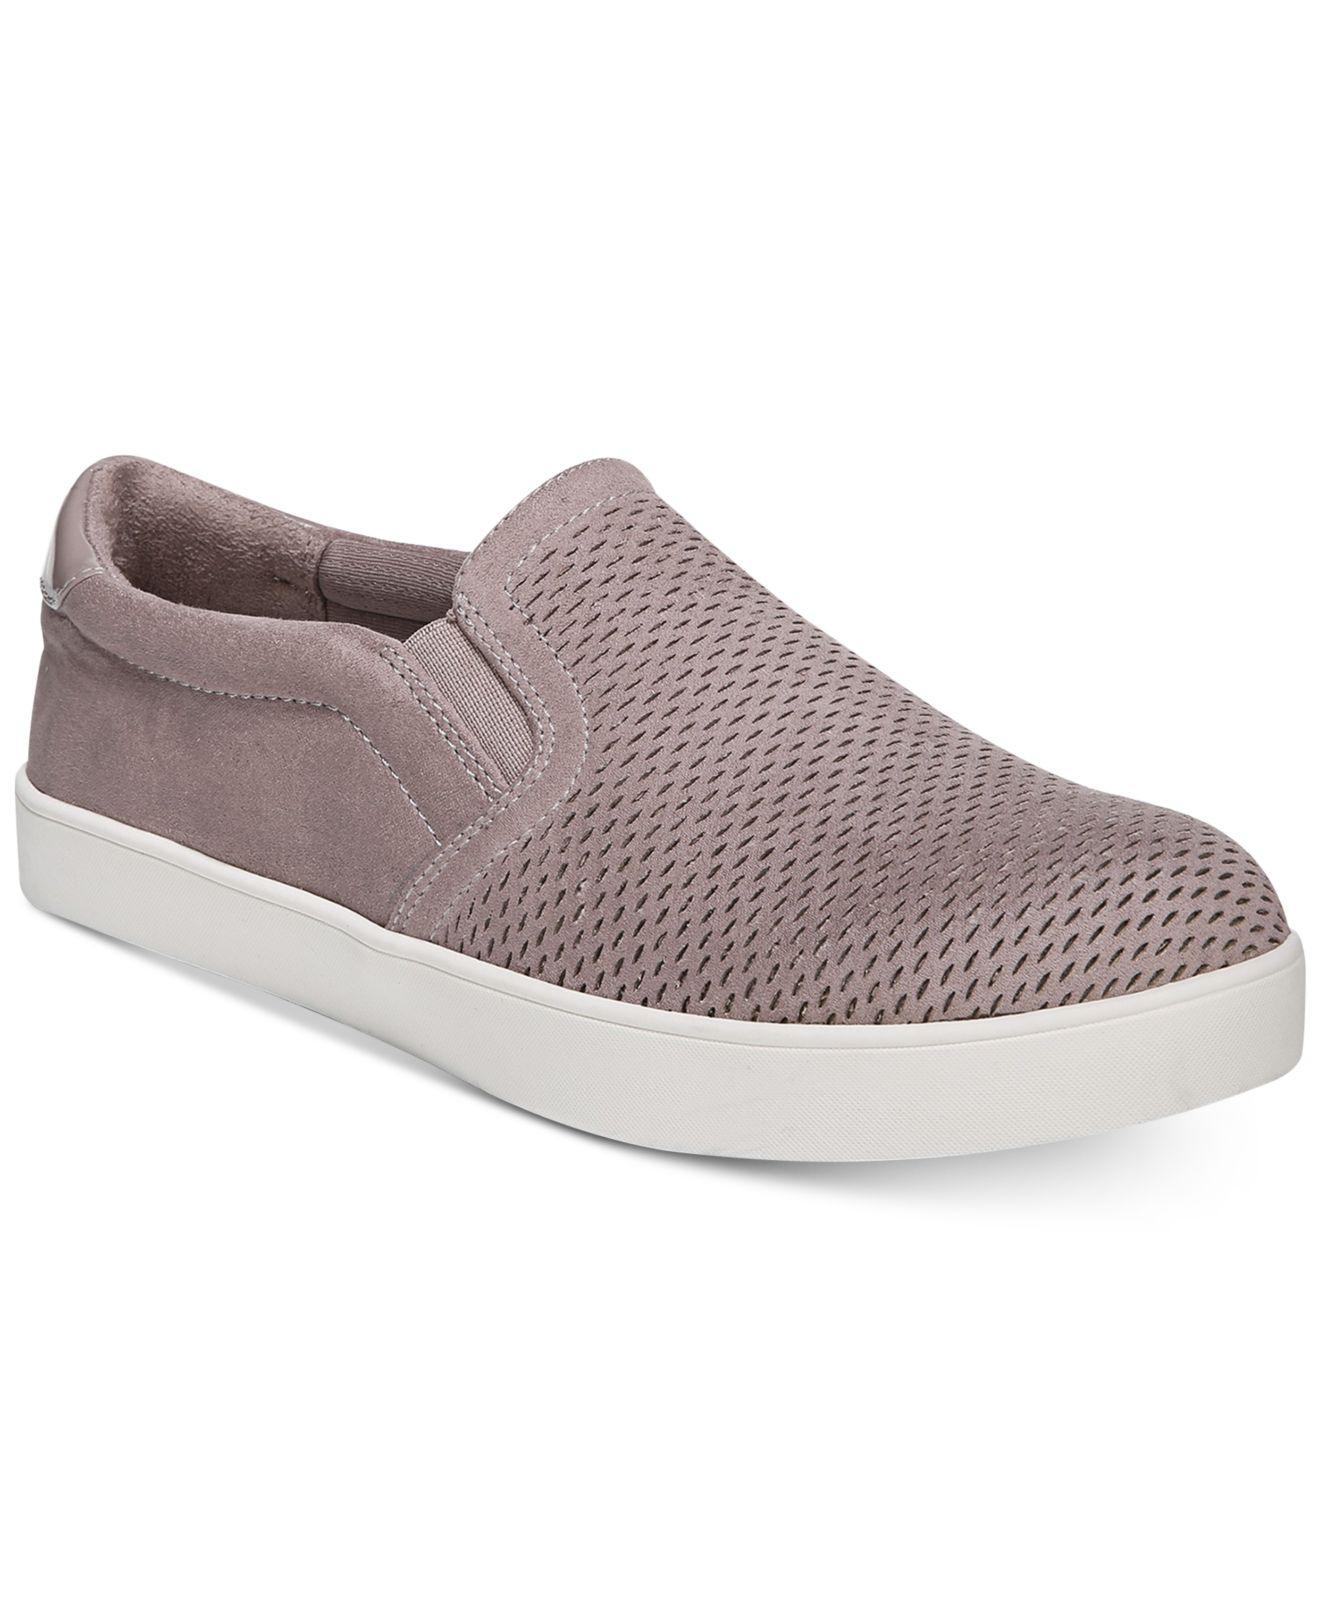 52e6f0739 Lyst - Dr. Scholls Madison Sneakers - Save 10%